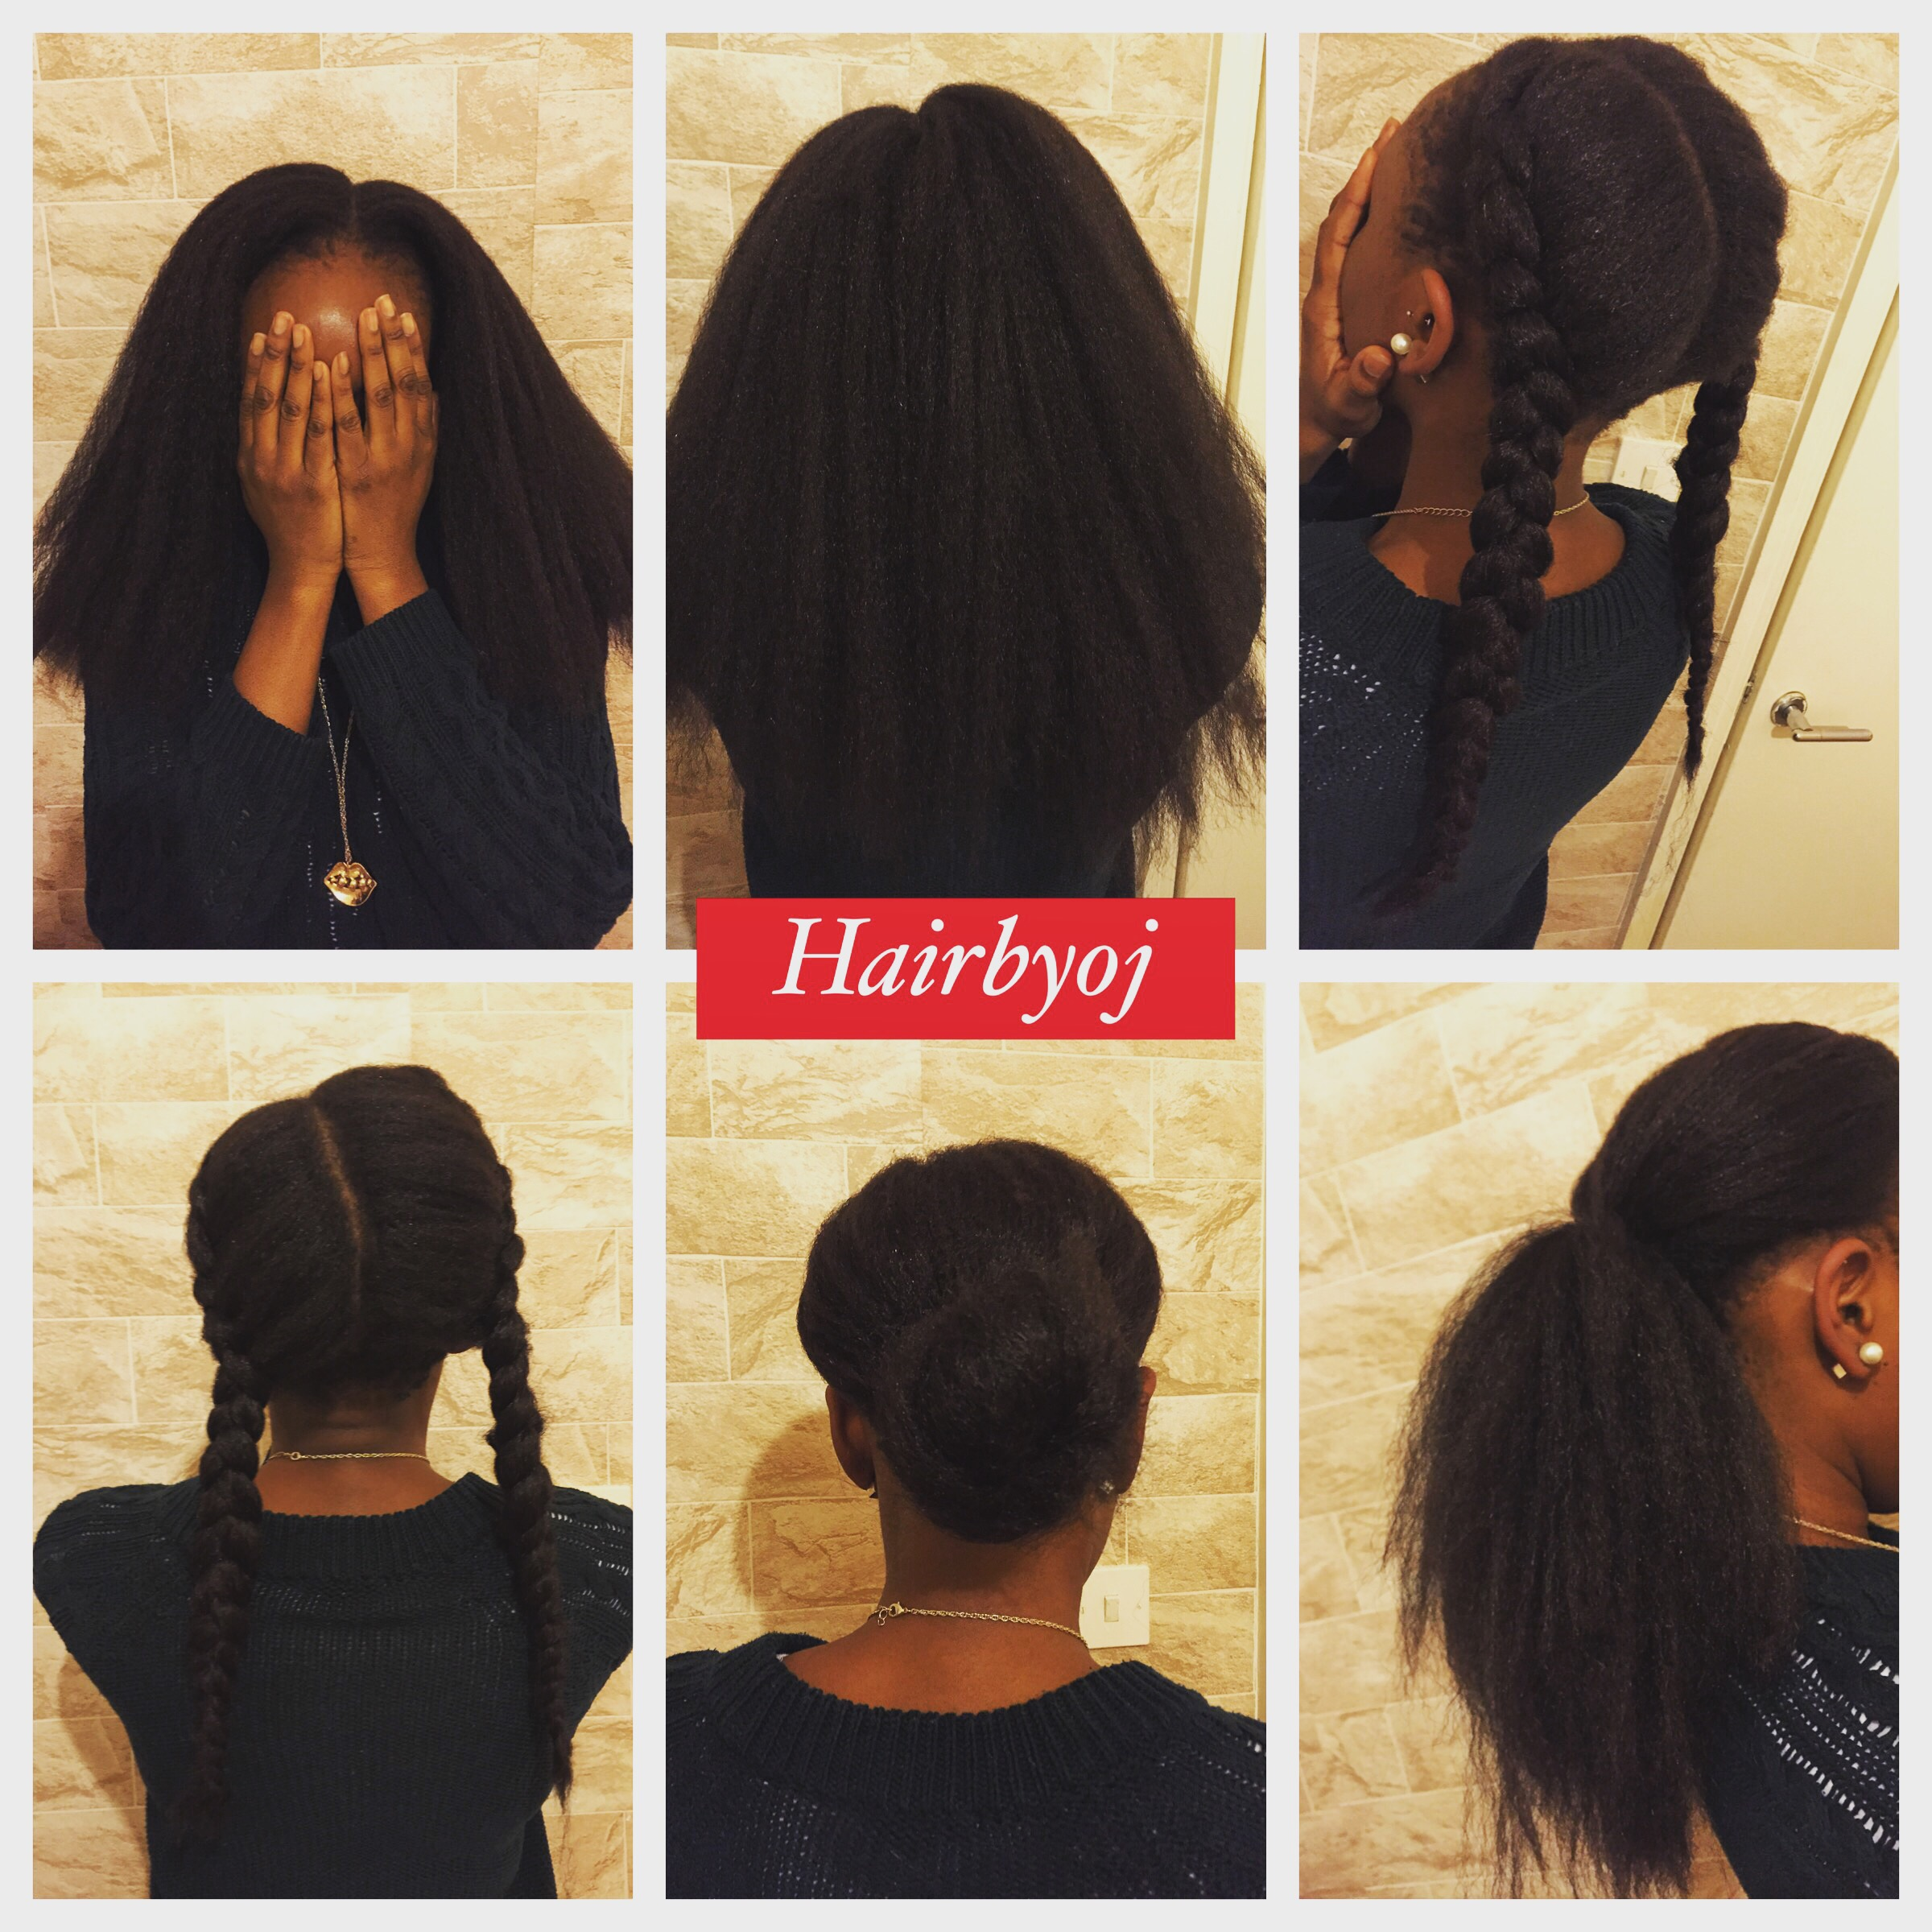 Shoulder Length 2 Way Vertical Part Crochet Braids With Straight Kanekelon Hair And Minimal Leave Out Hairbyoj